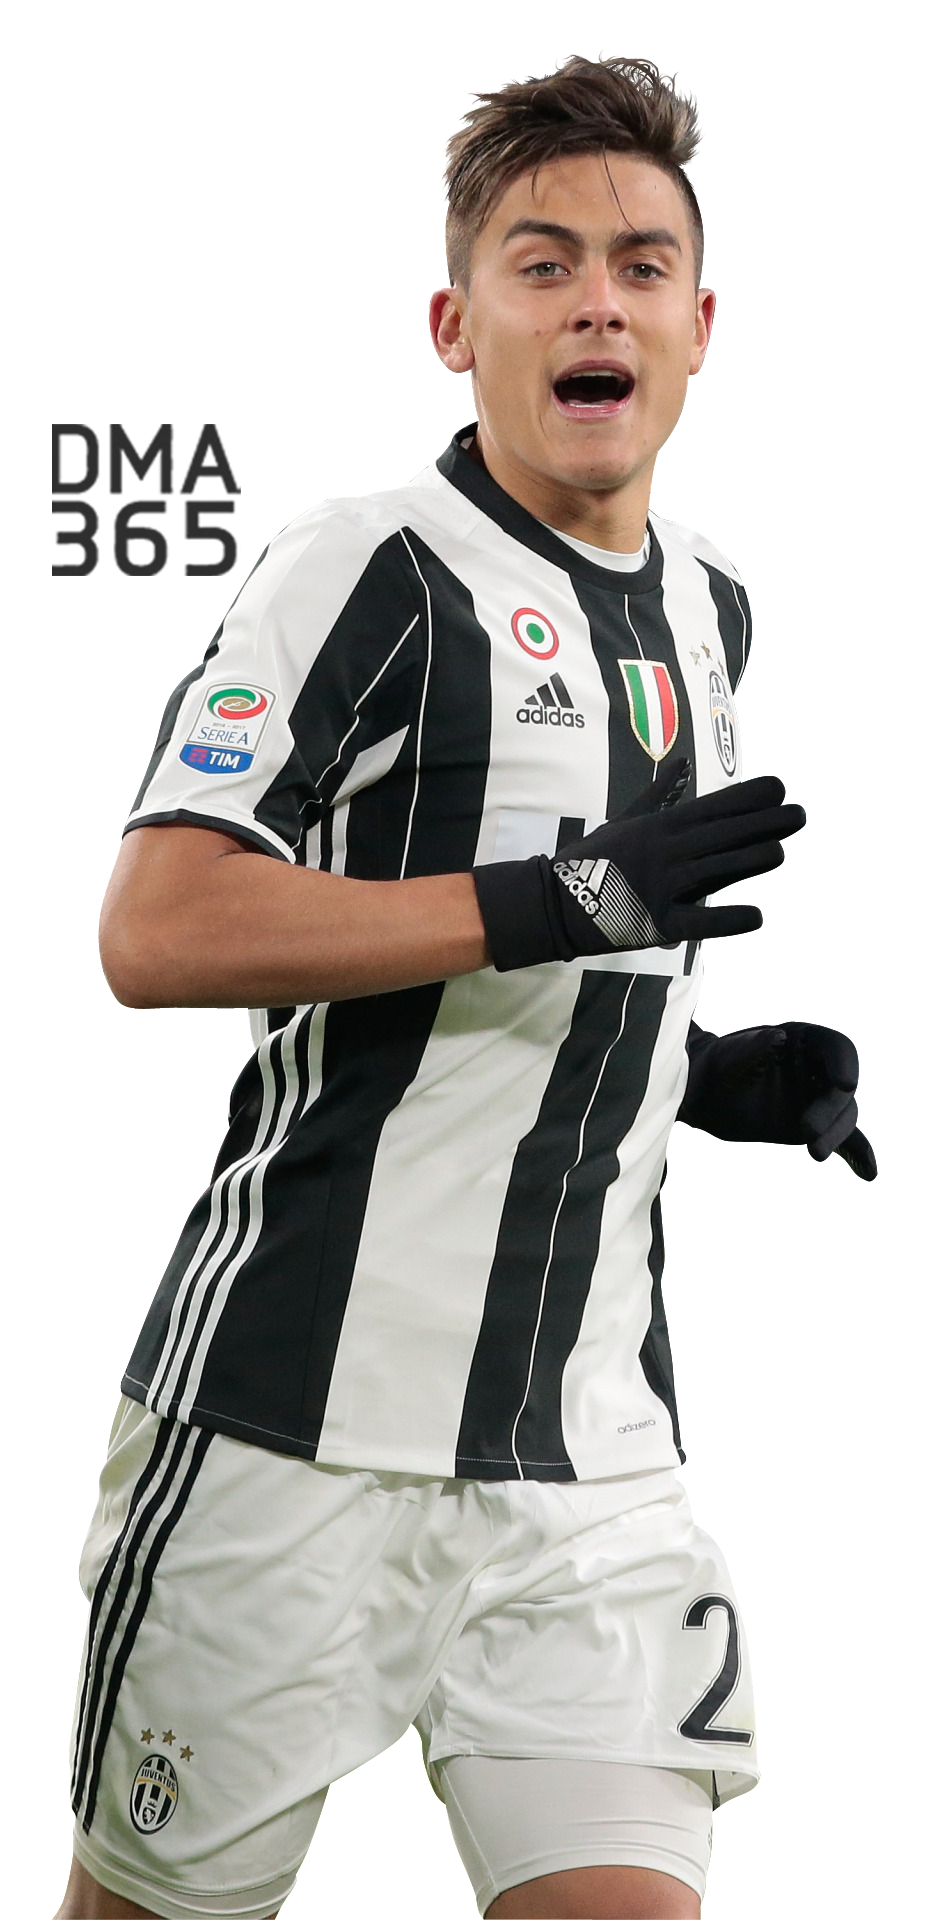 Paulo Dybala by dma365 on DeviantArt